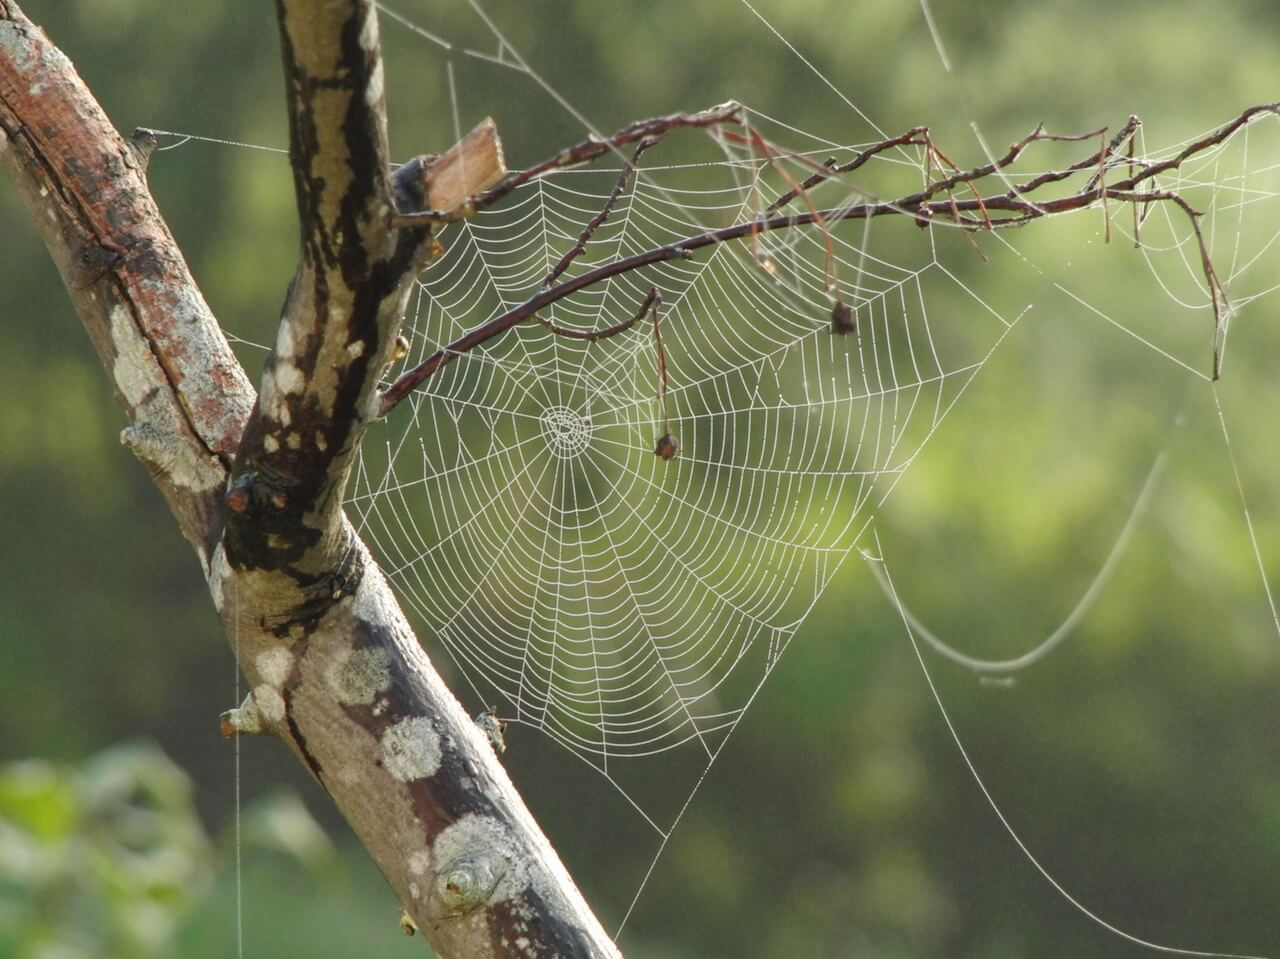 spider-web-tree-branches-pattern-39494